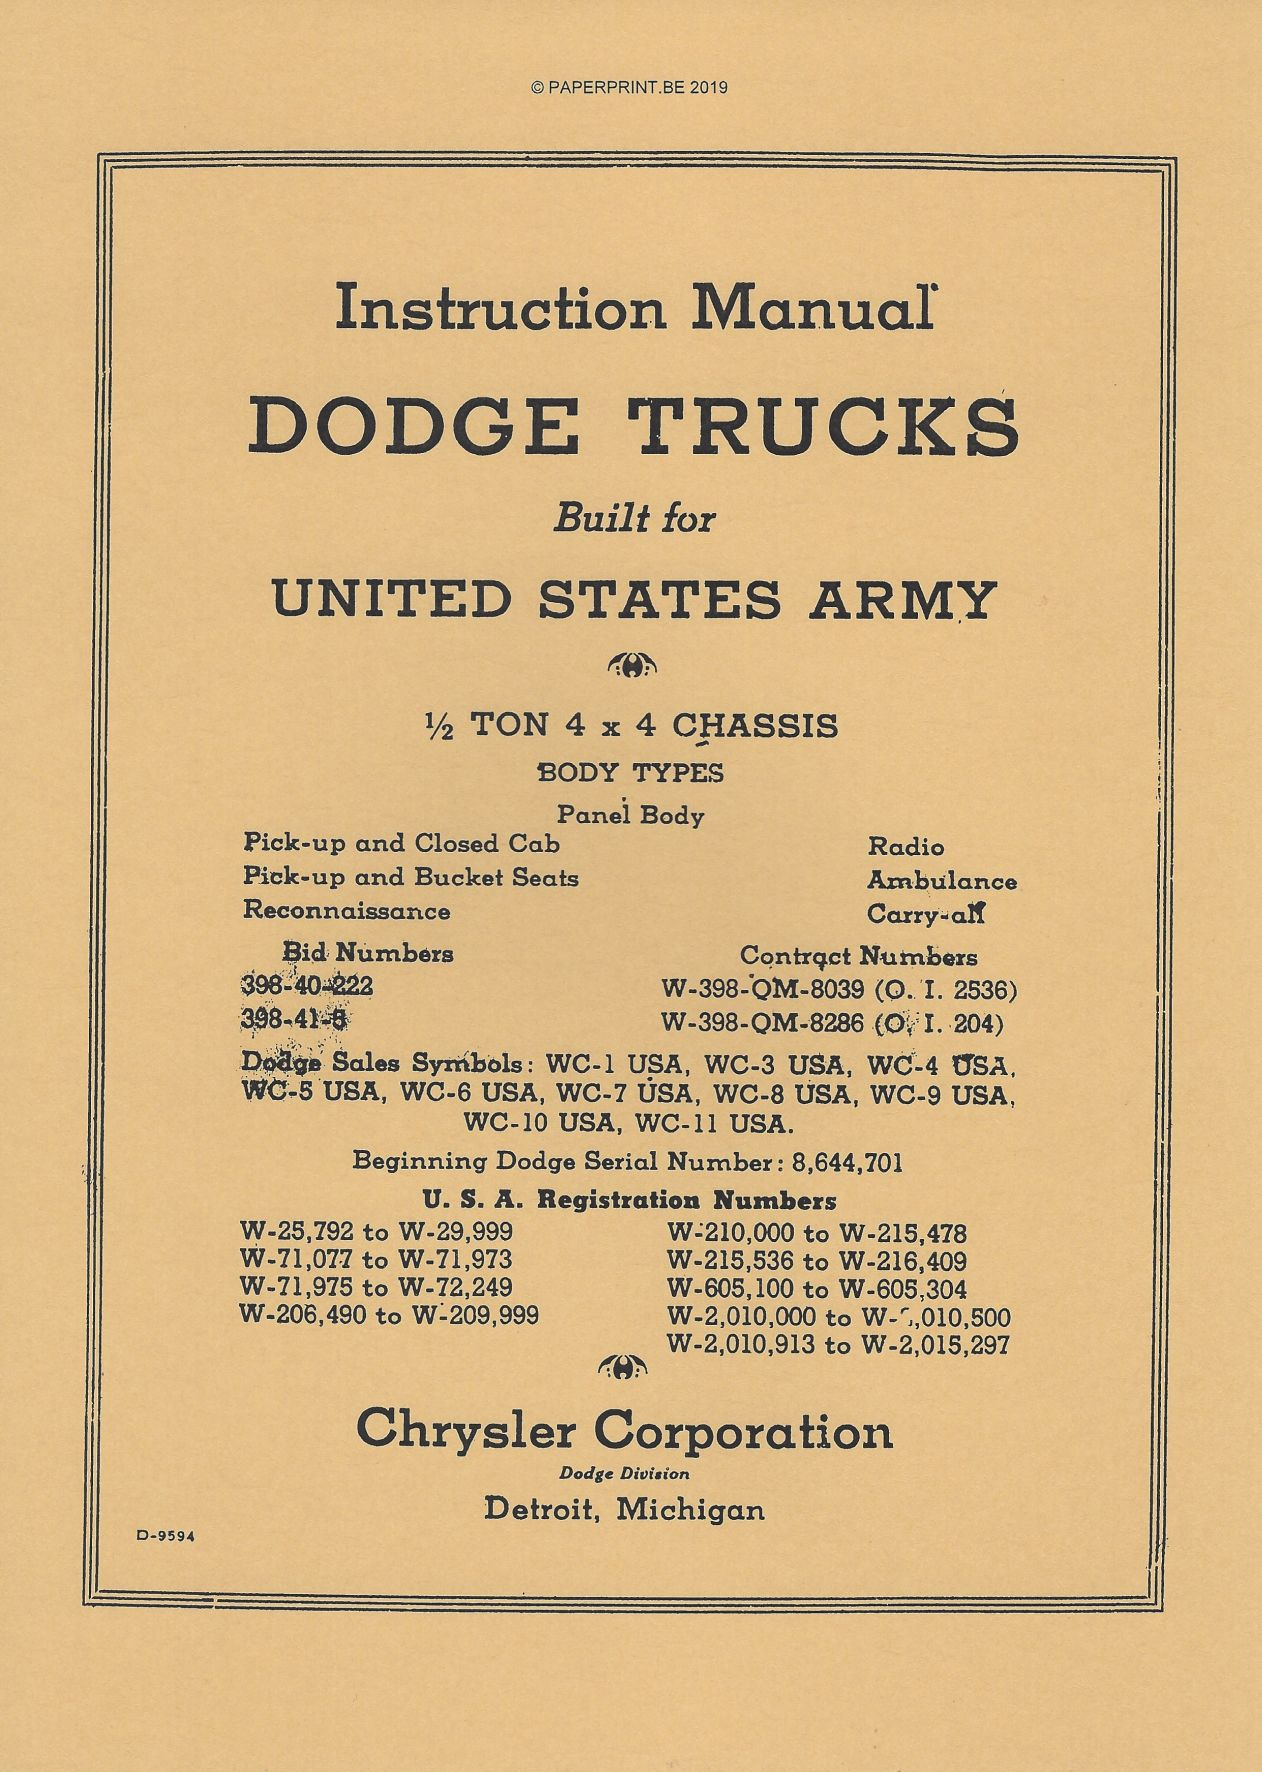 DODGE ½ TON 4x4 1940 INSTRUCTION MANUAL